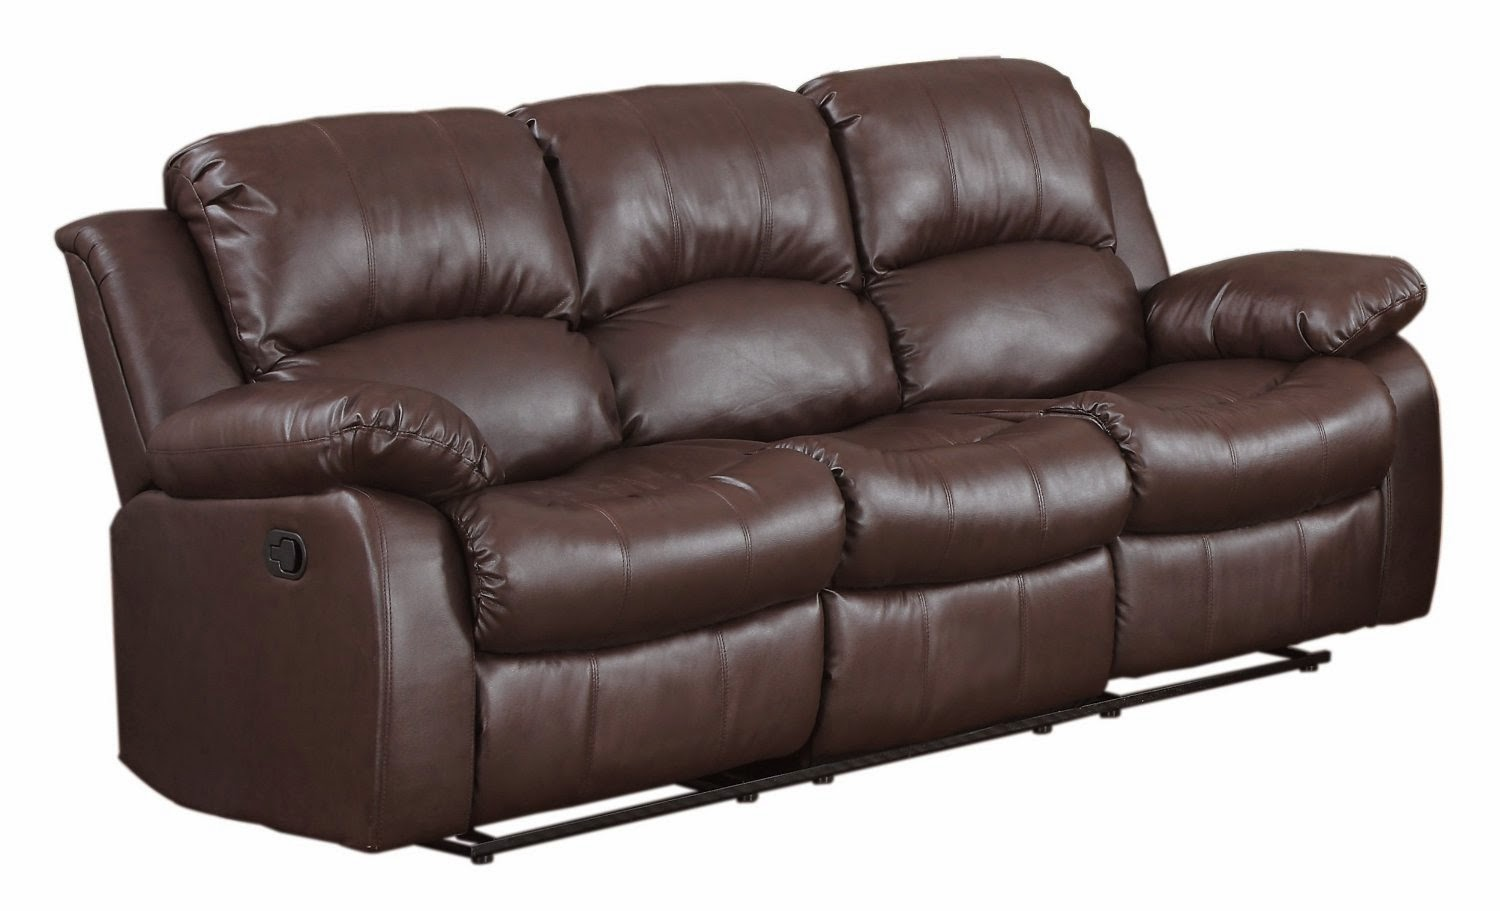 Reclining Sofa Sectionals For Small Spaces ... sofas can be combined with corner models plus recliners or  alternatively gliders for the entire perfect queen bed solution in order to  those extra ...